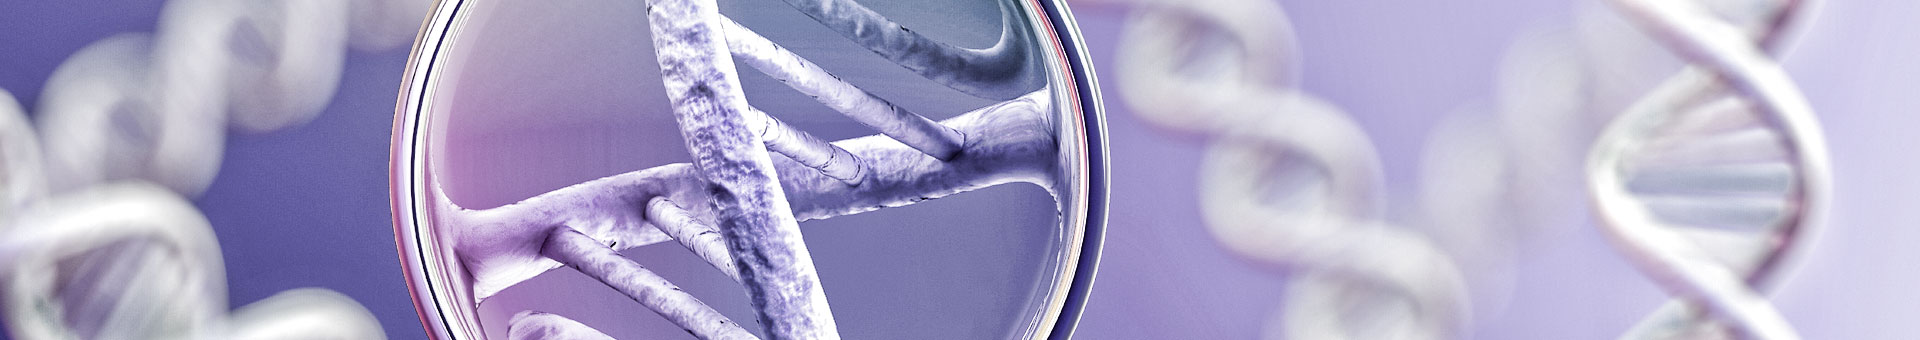 cancer_cytogenetics_banner_internal